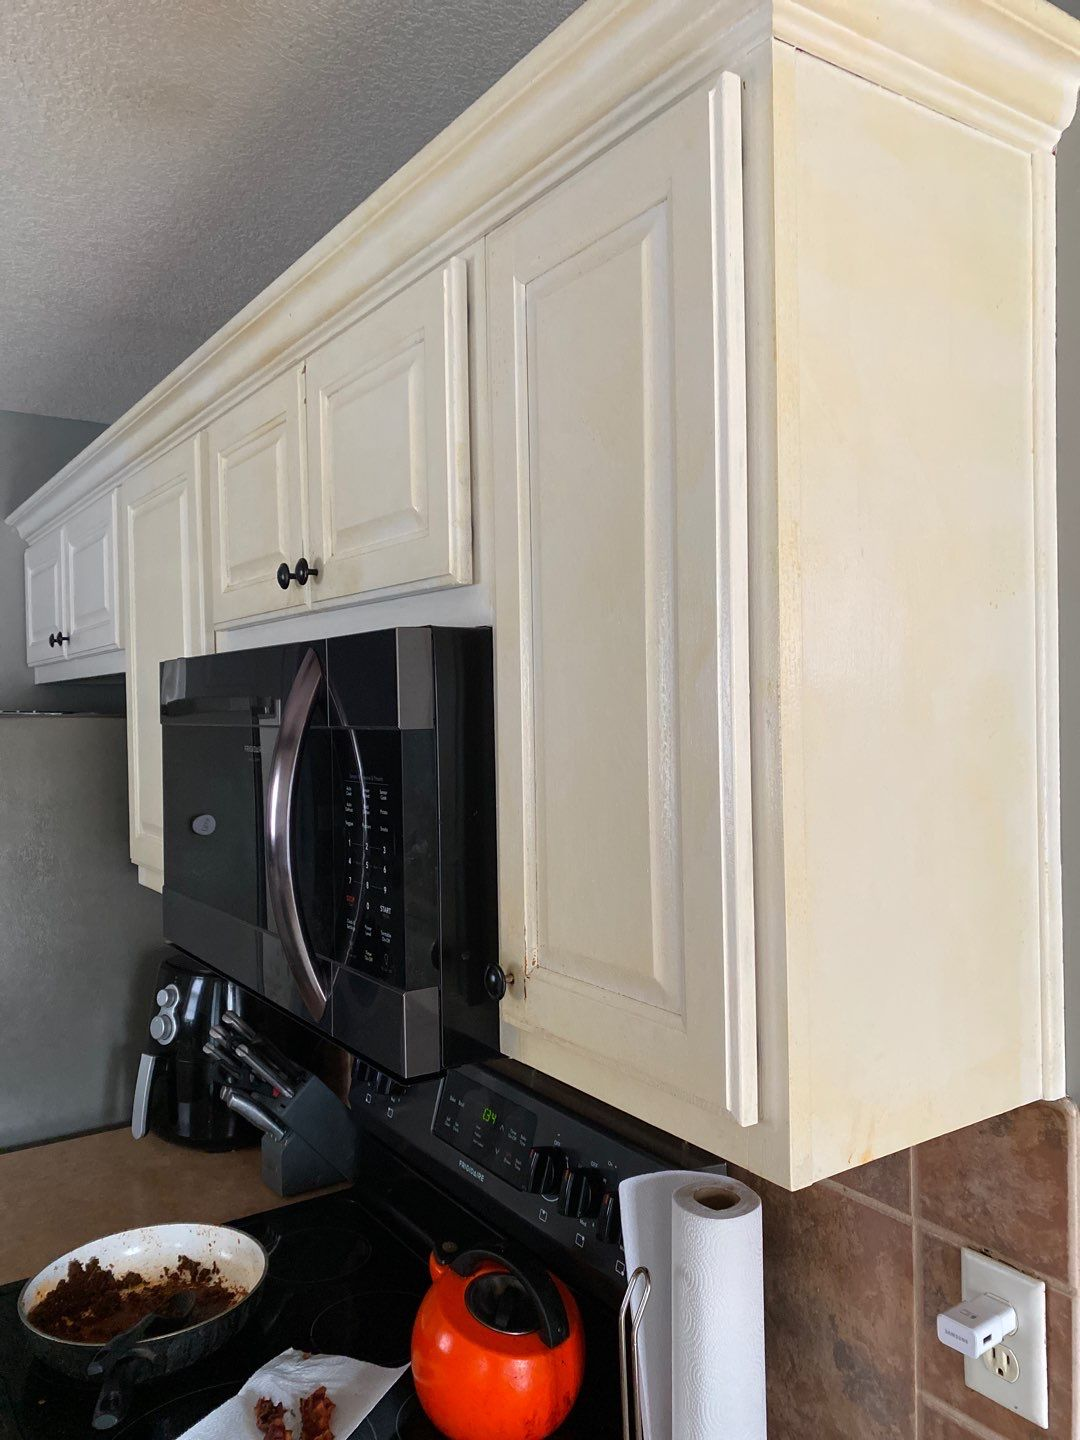 2 Mar 16 2020 01 34pm uUBb - Why it's expensive to paint cabinets - Overland Park